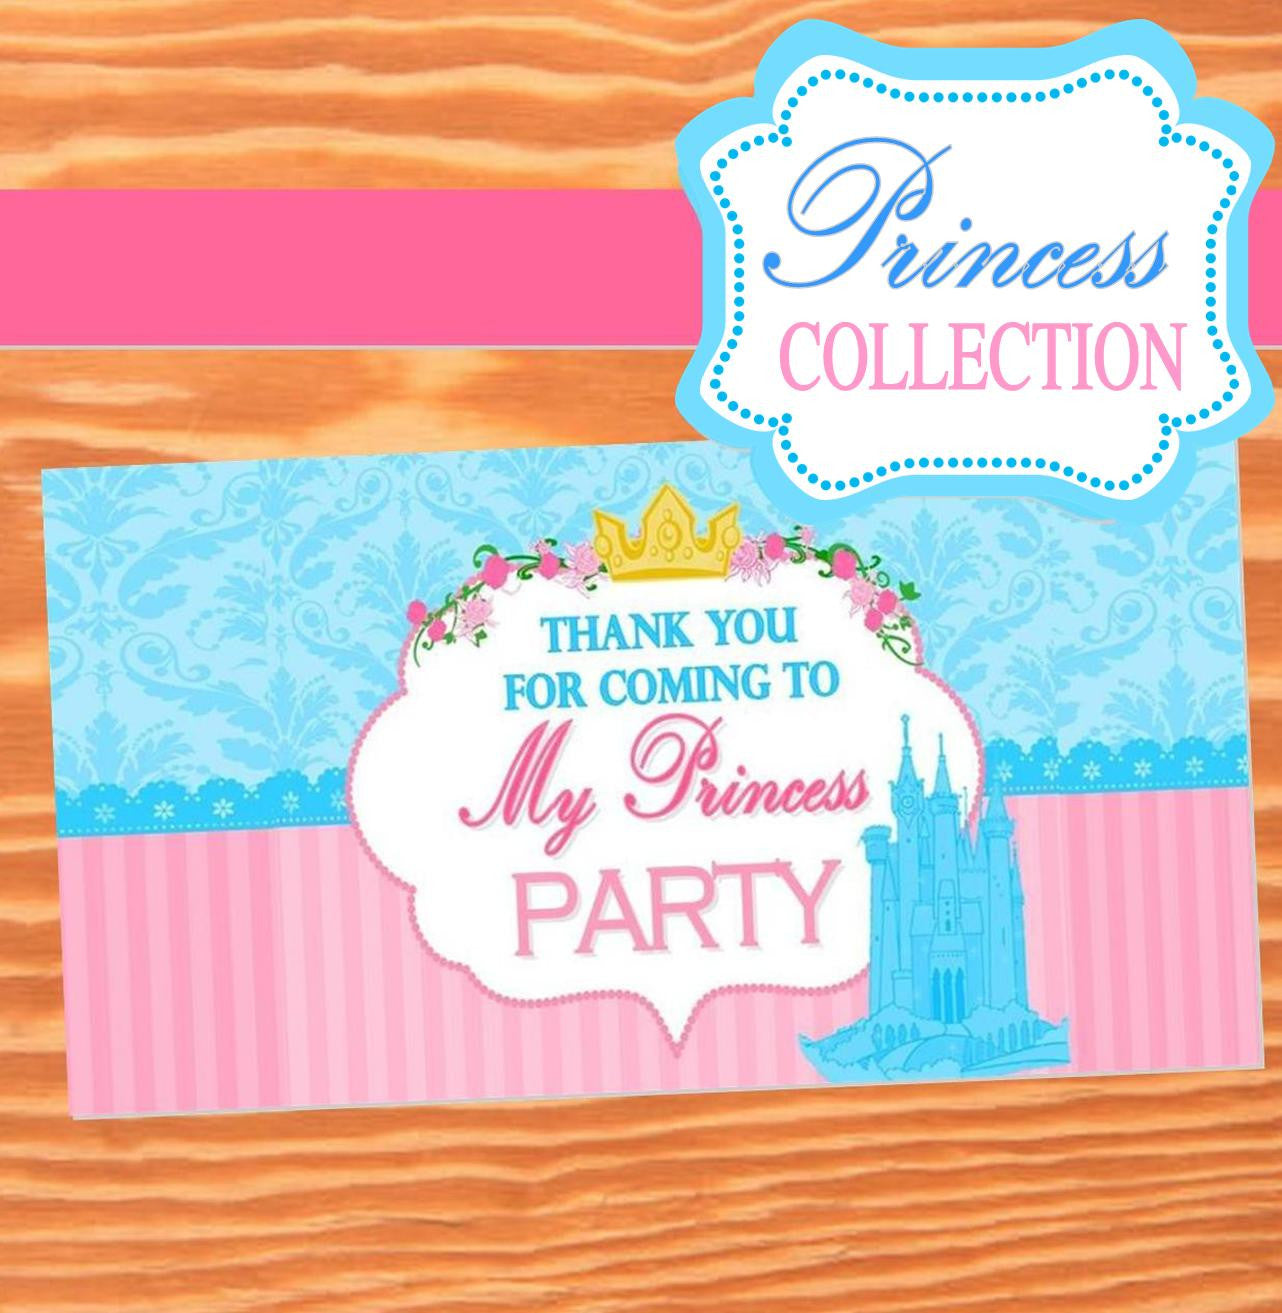 PRINCESS BIRTHDAY - Princess Party- BOX LABELS